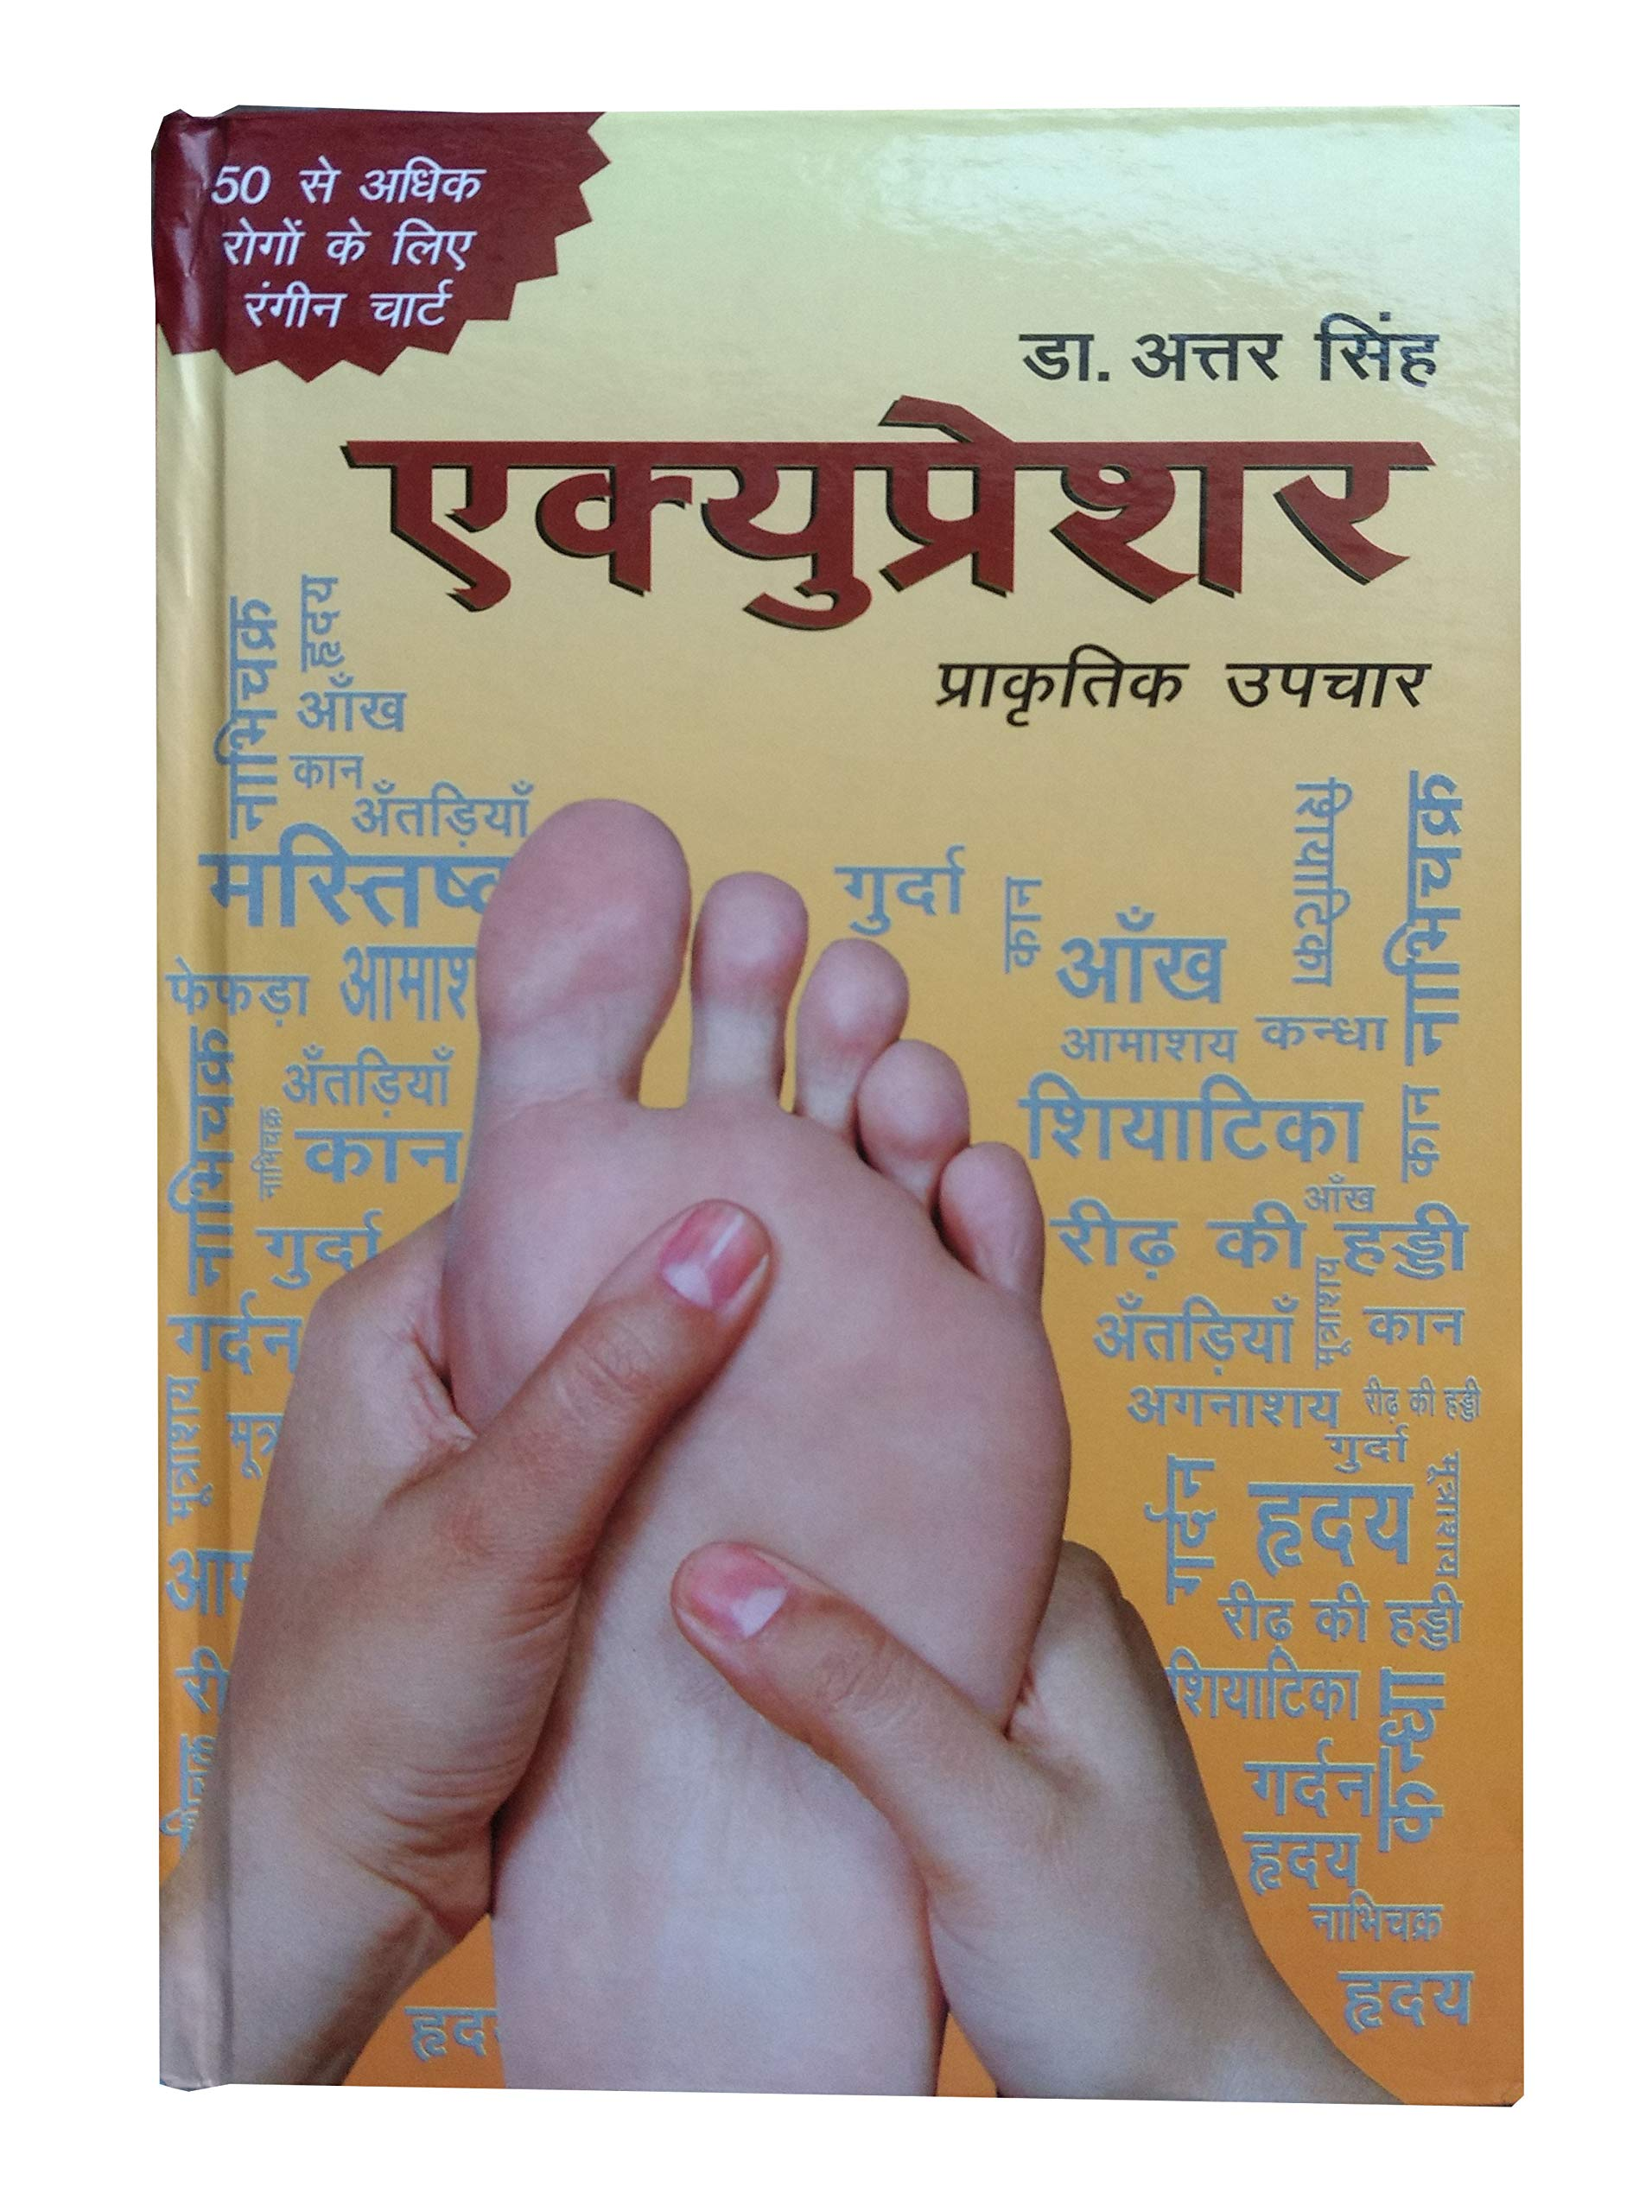 Acupressure - Dr. Atter Singh - Hindi      - 326